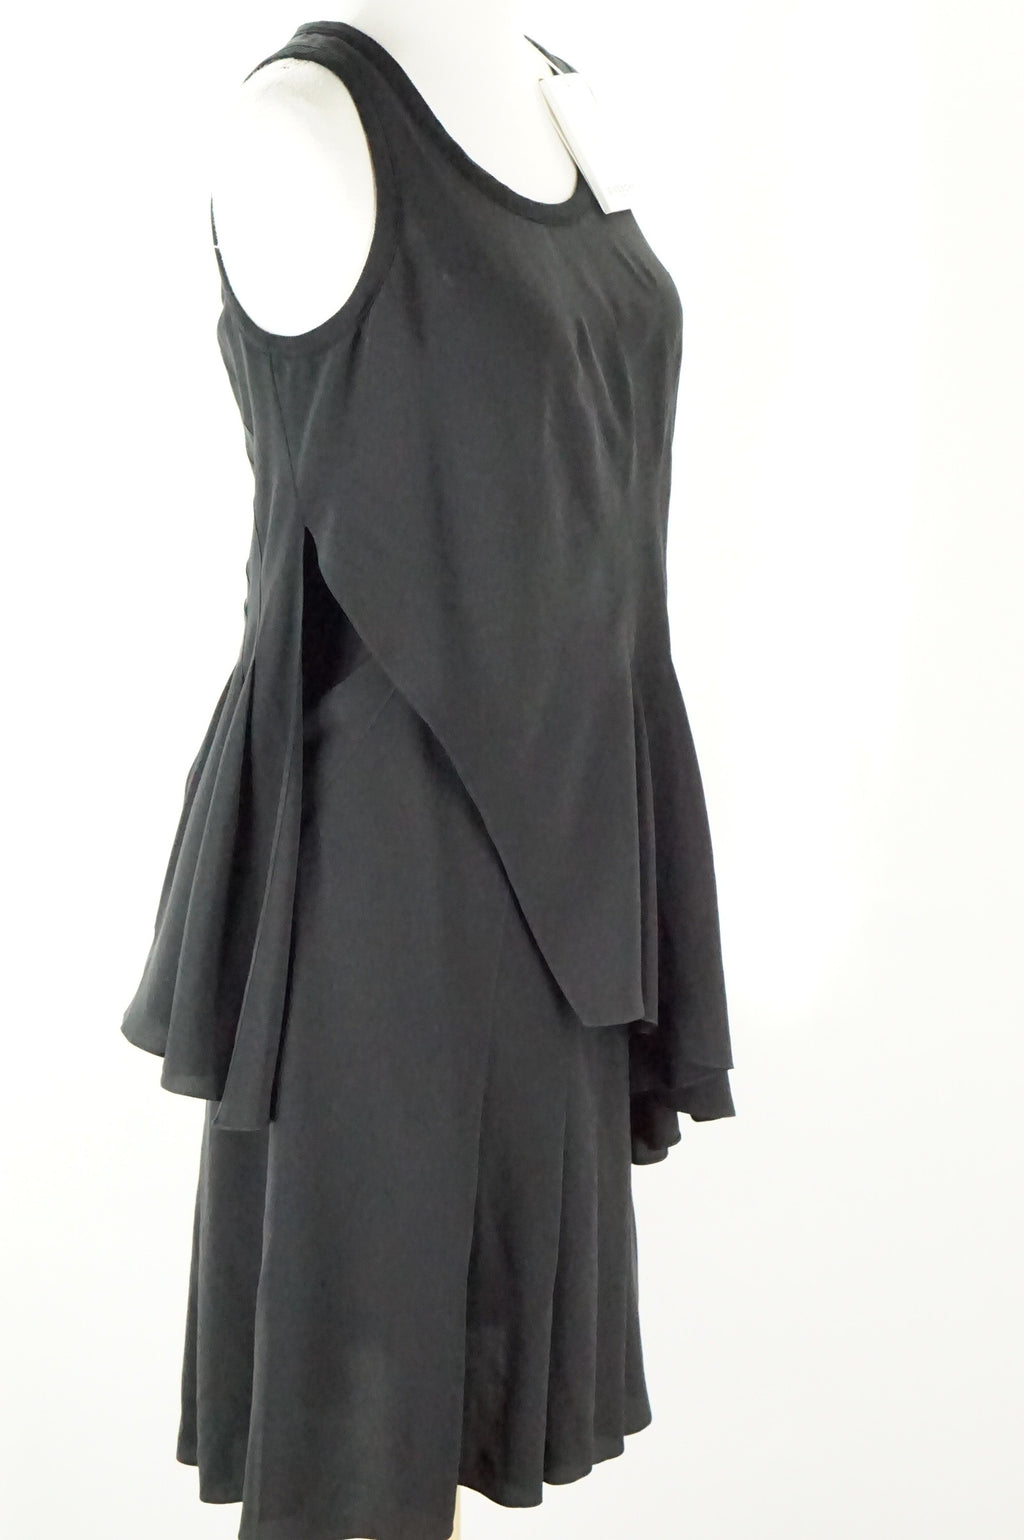 Givenchy Black Silk Tiered Pleated Sleeveless Dress SZ 38 FR 6 US New $1990